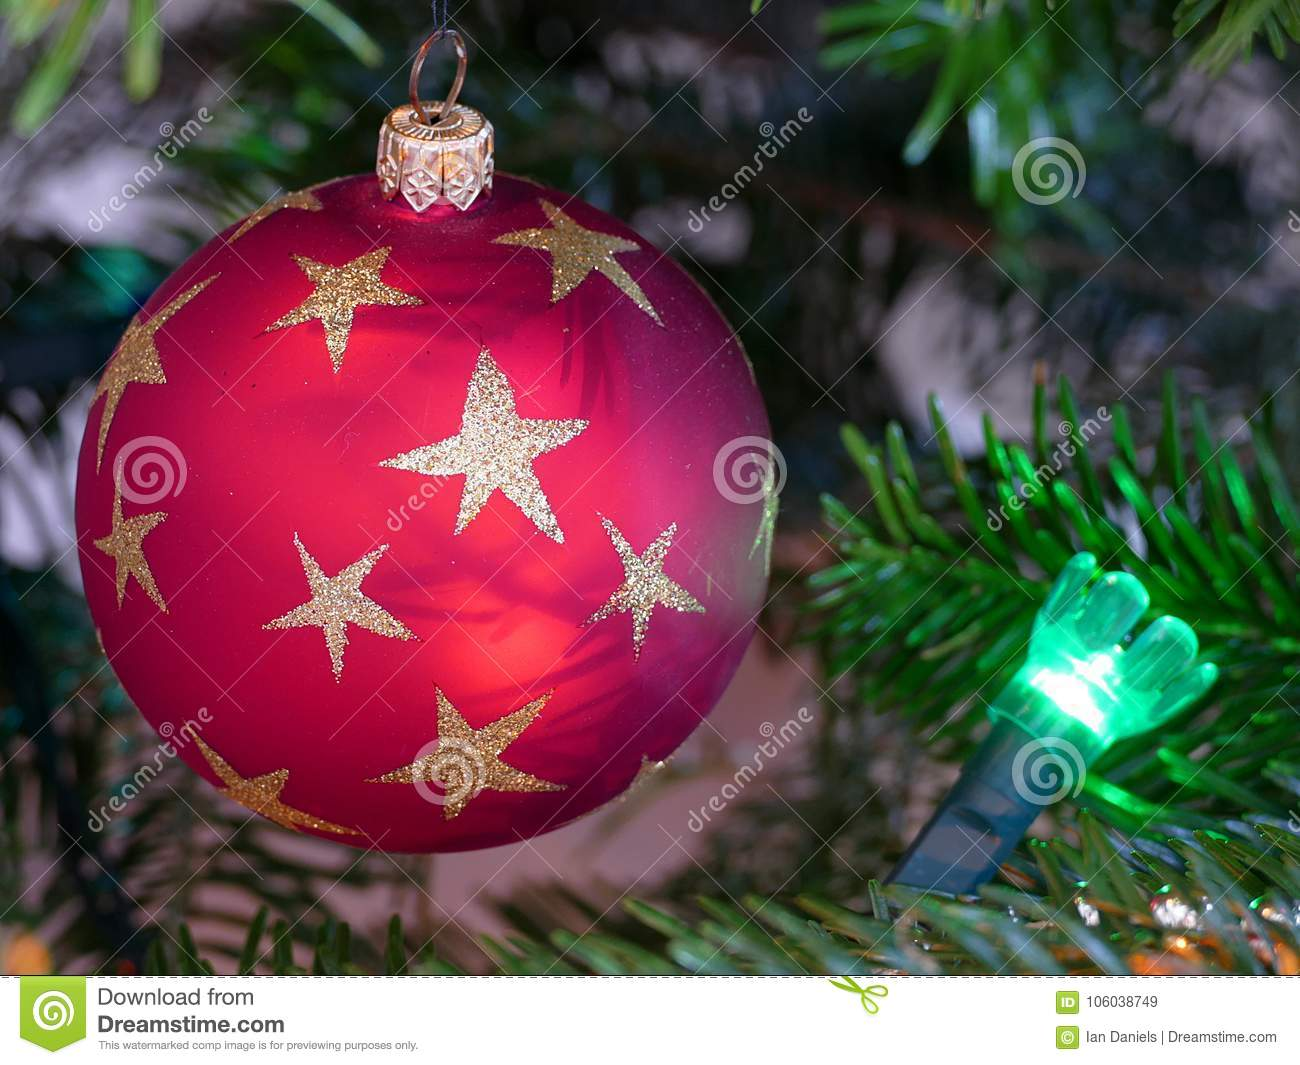 Close up of a circular red bauble on a Christmas tree with a green fairy light